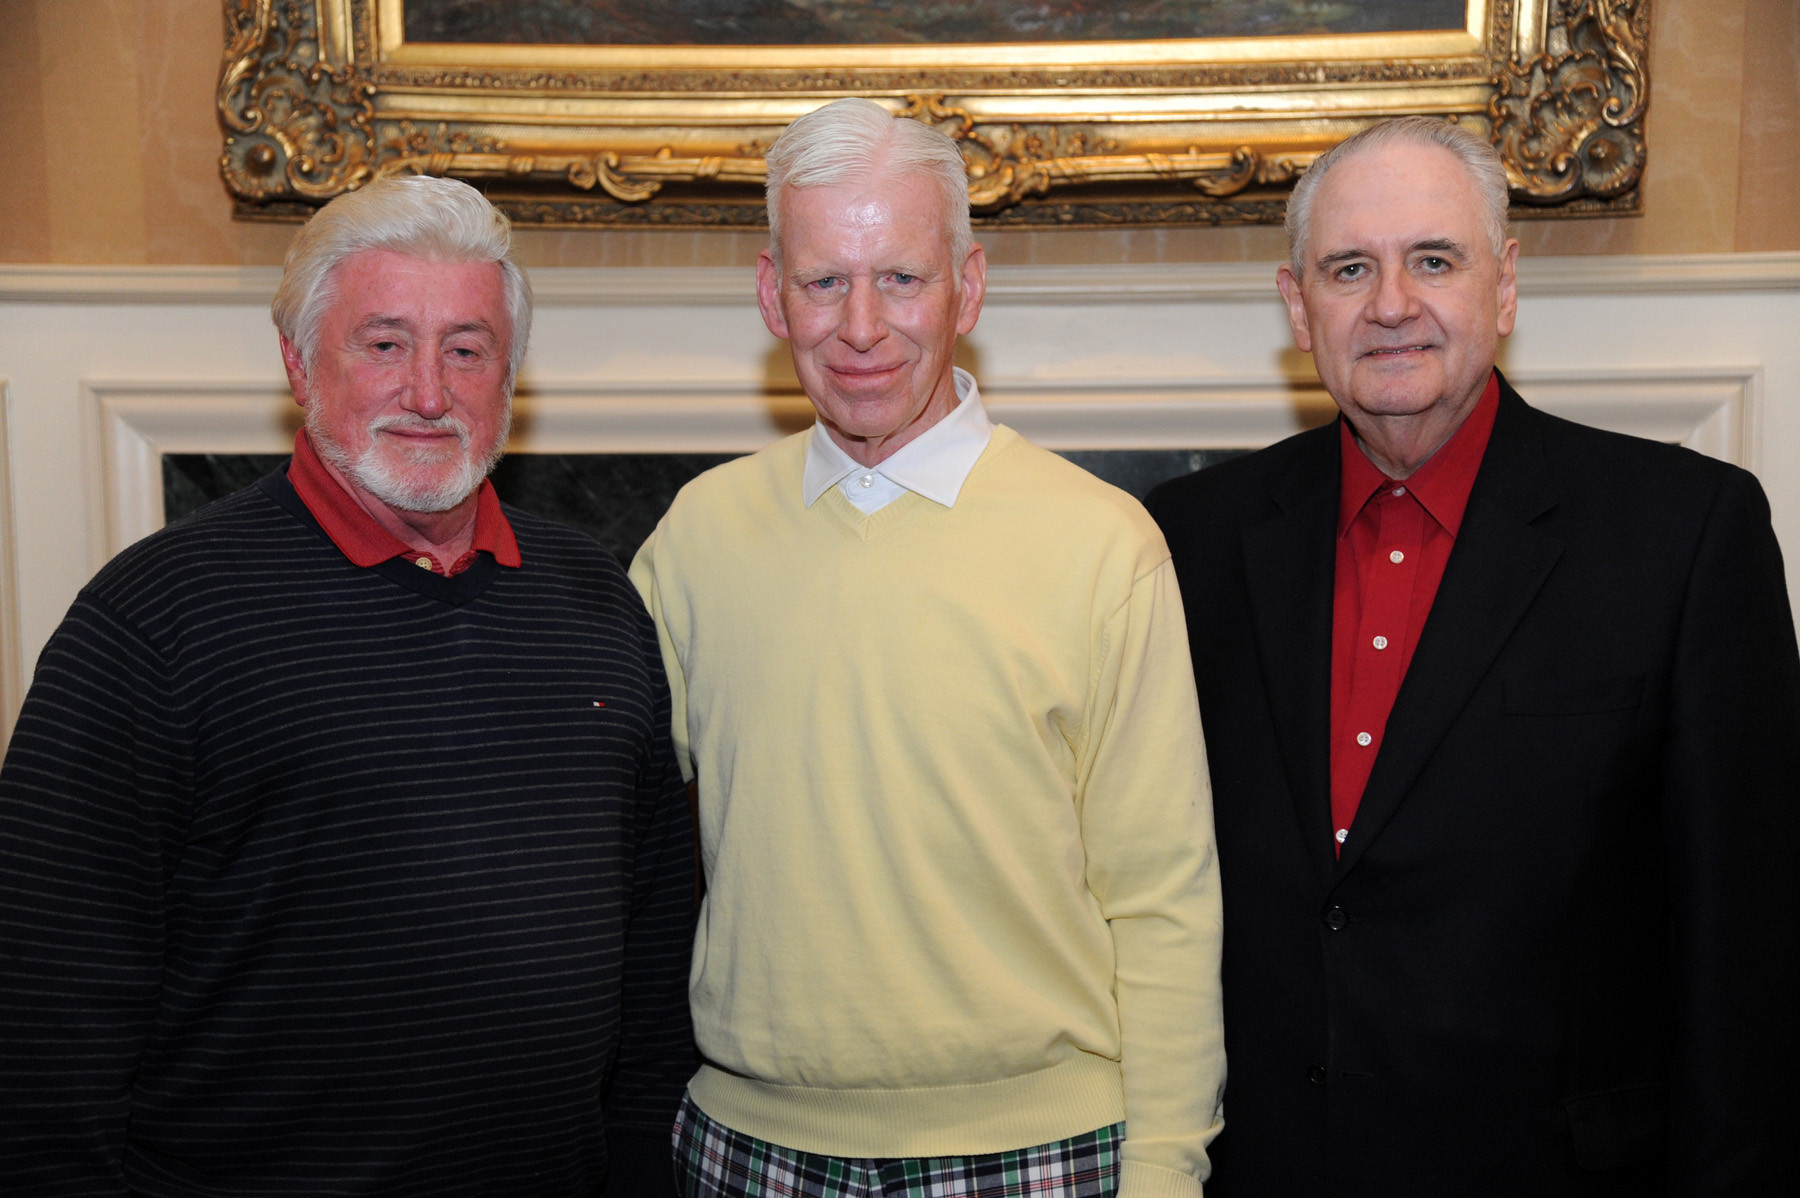 James McQuade, Peter Ledwith and Bill Gaylor were honored at the dinner.